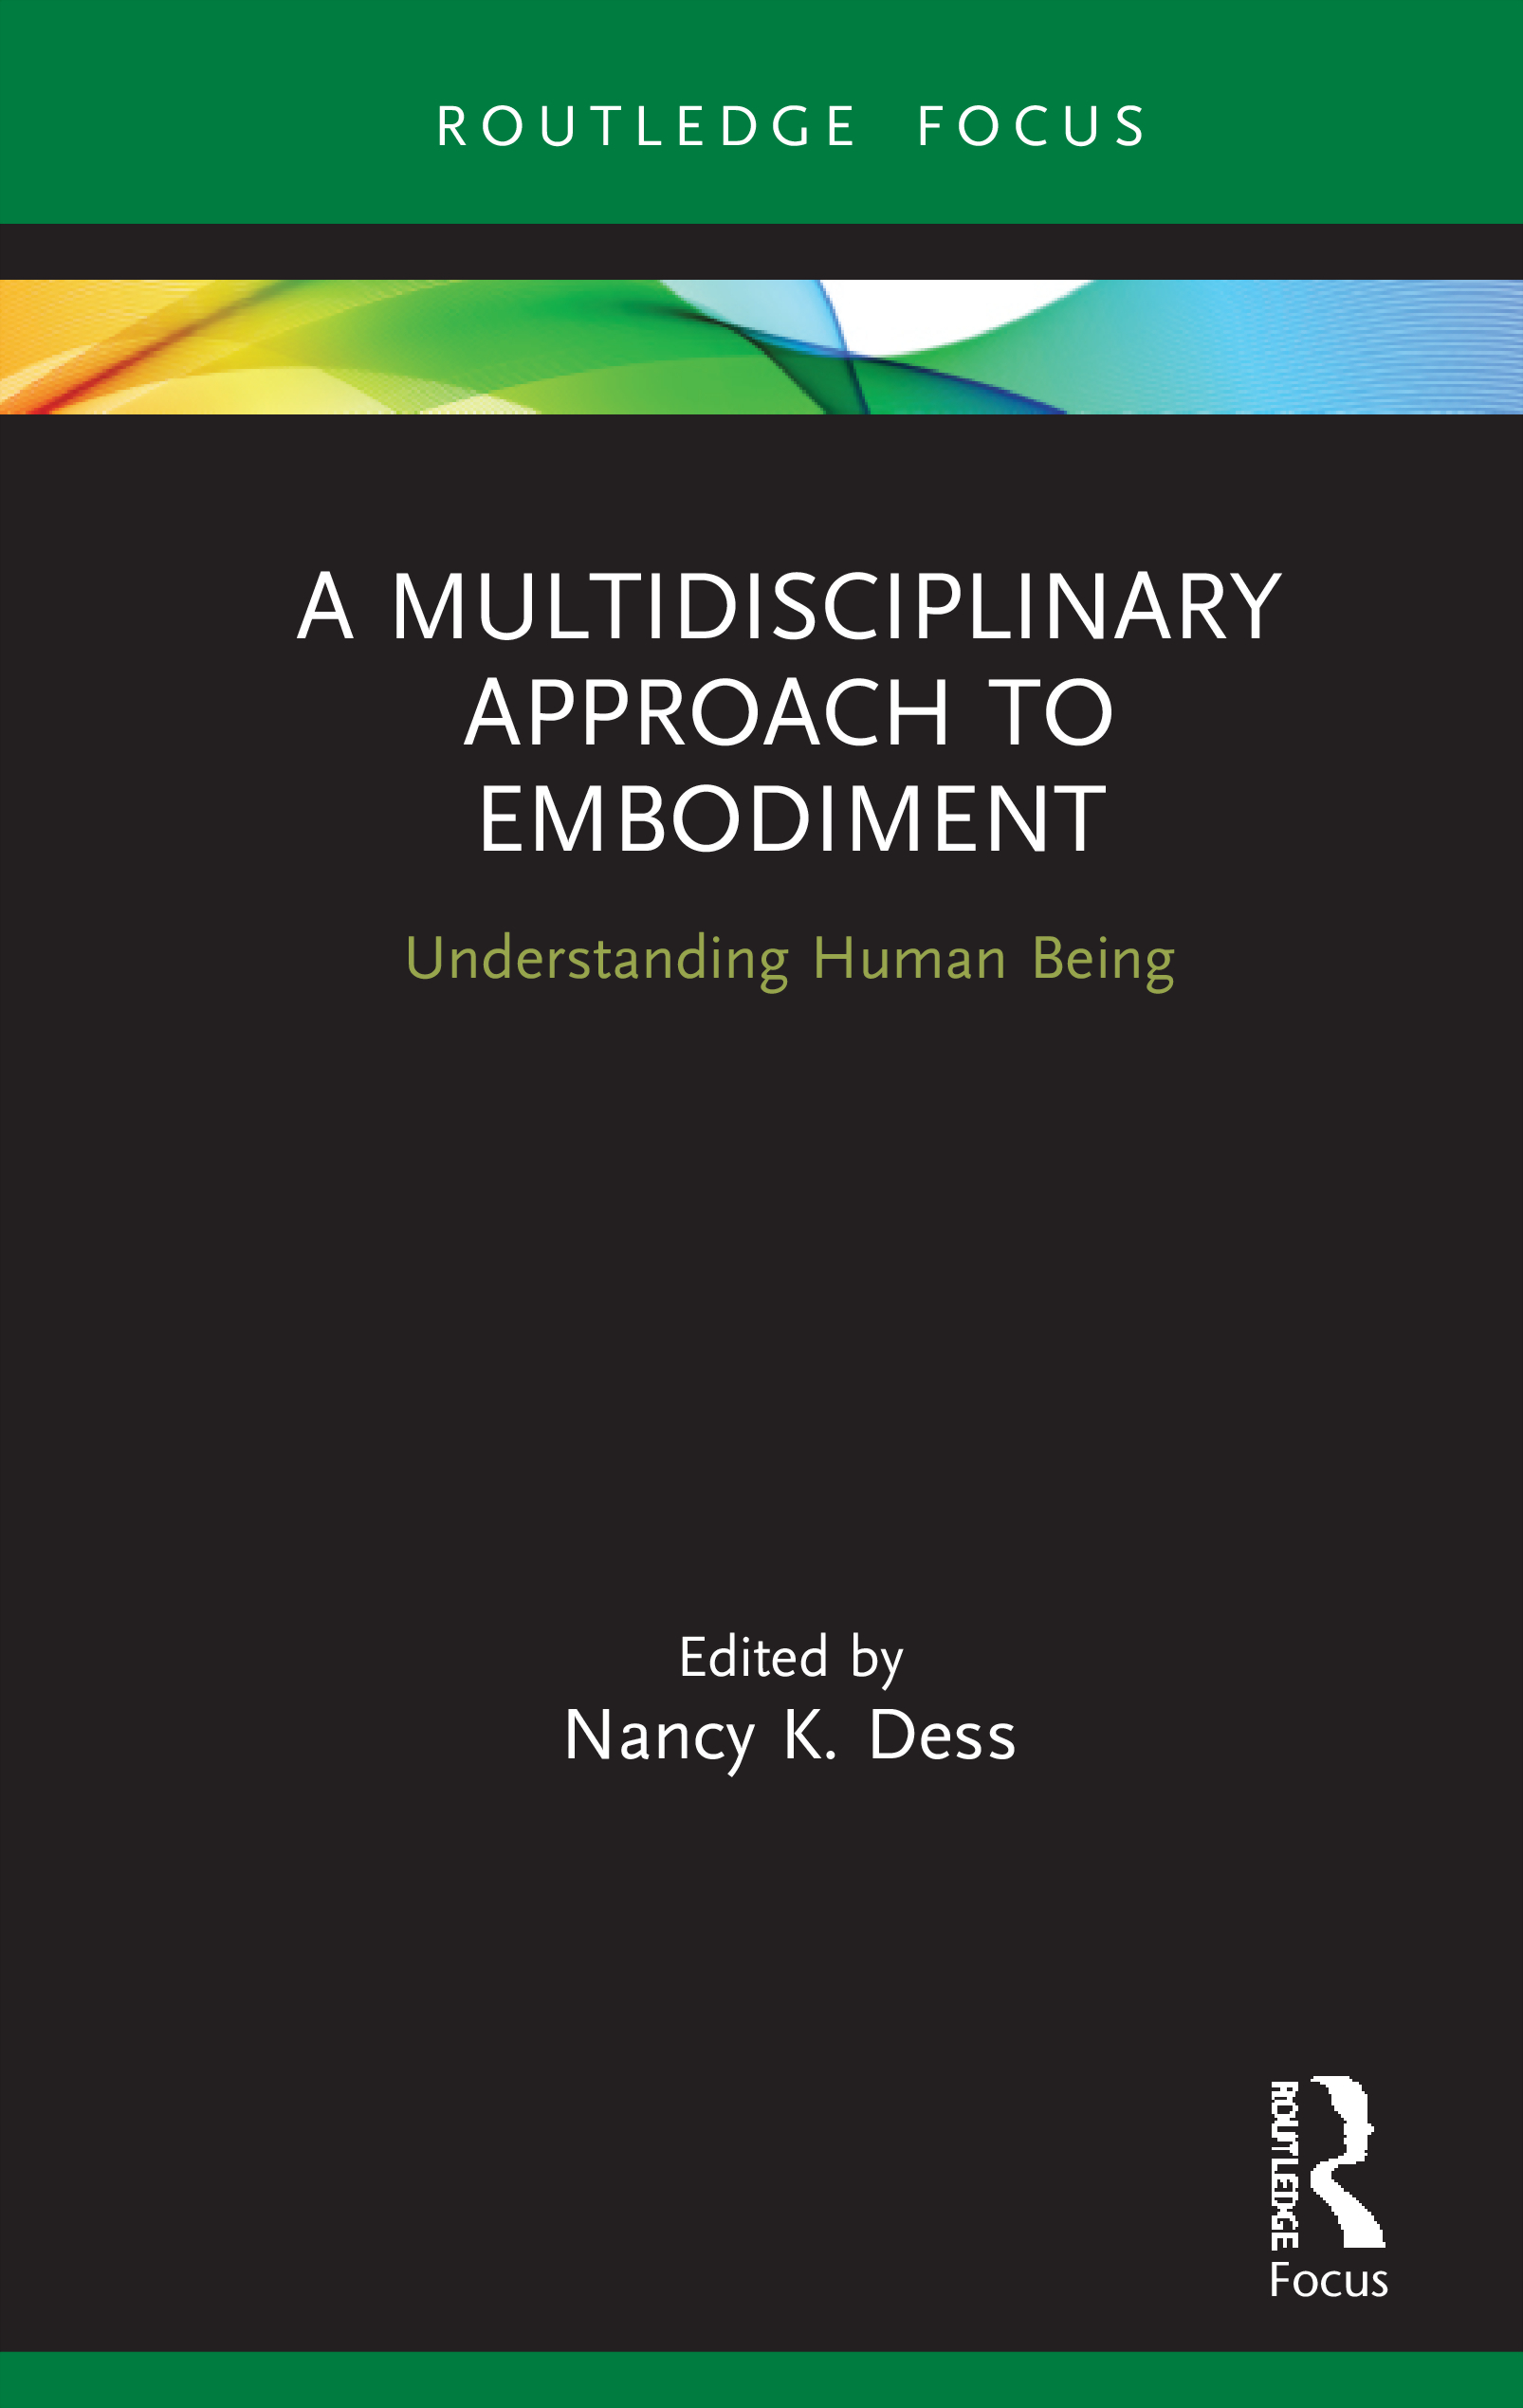 'A Multidisciplinary Approach to Embodiment': Book Review